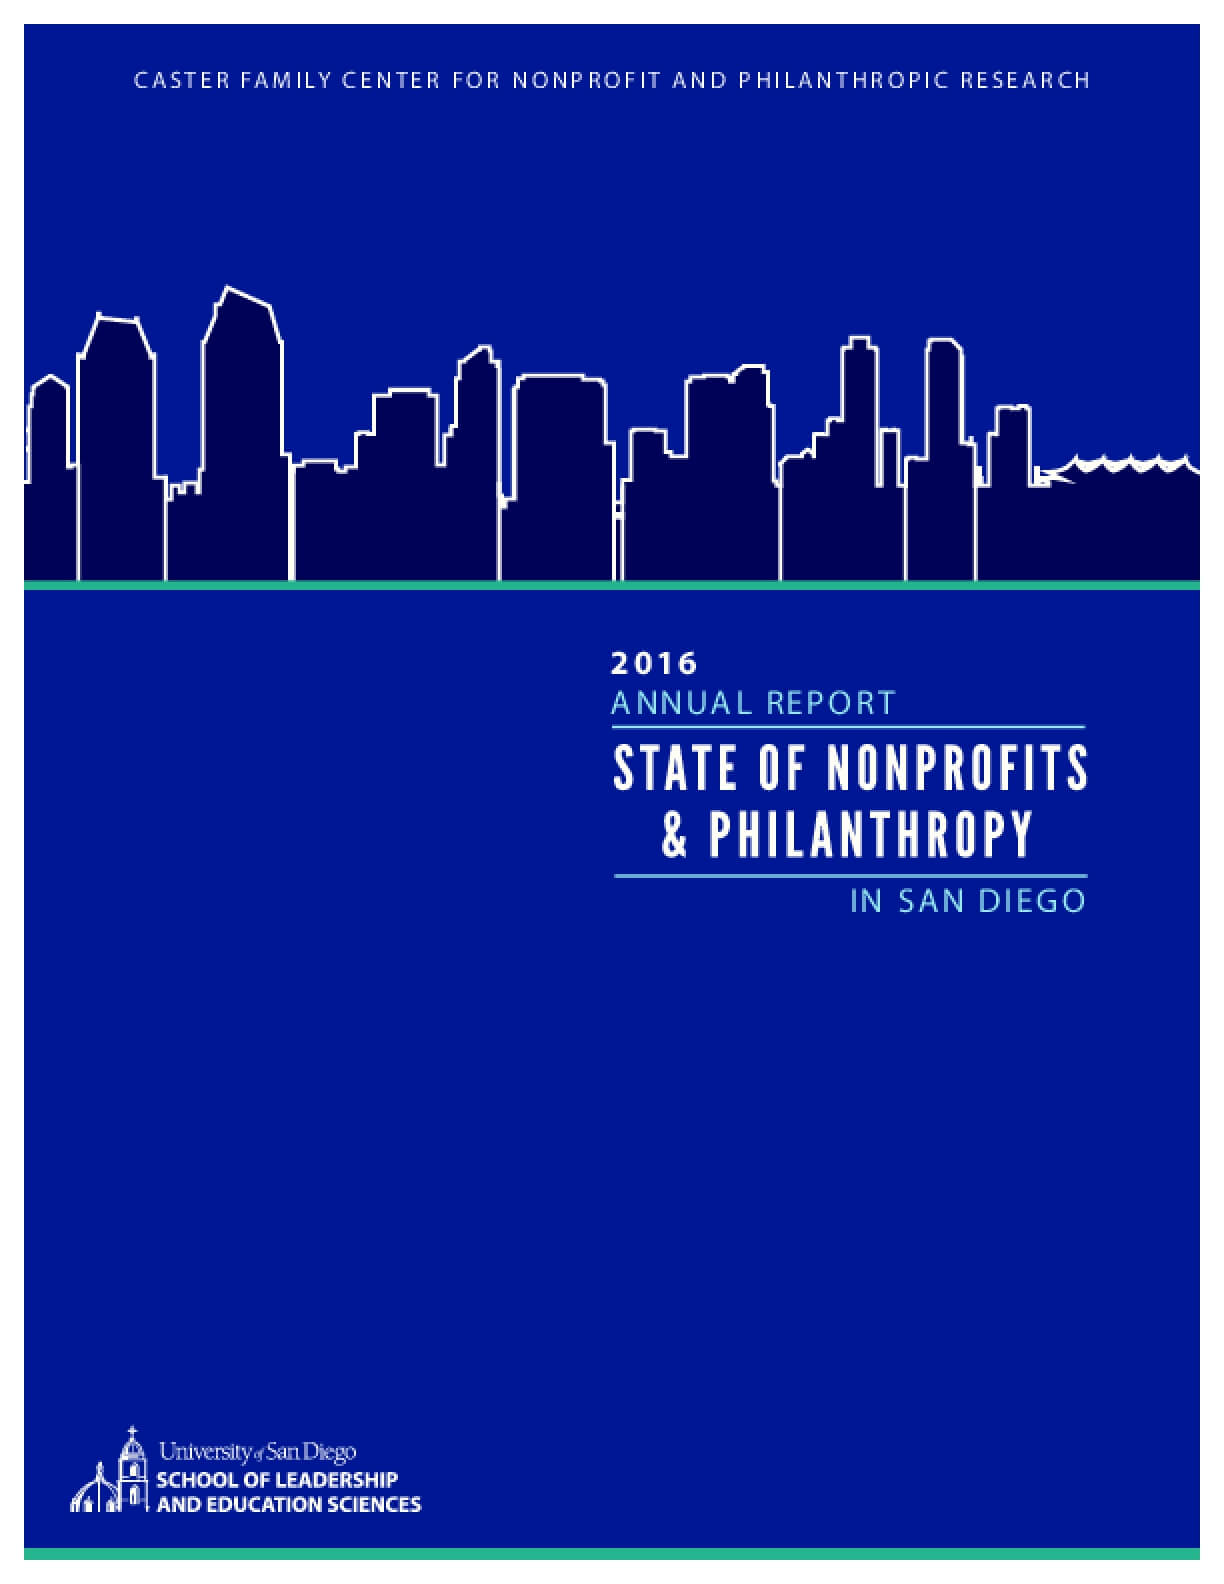 2016 Annual Report: State of Nonprofits and Philanthropy - In San Diego